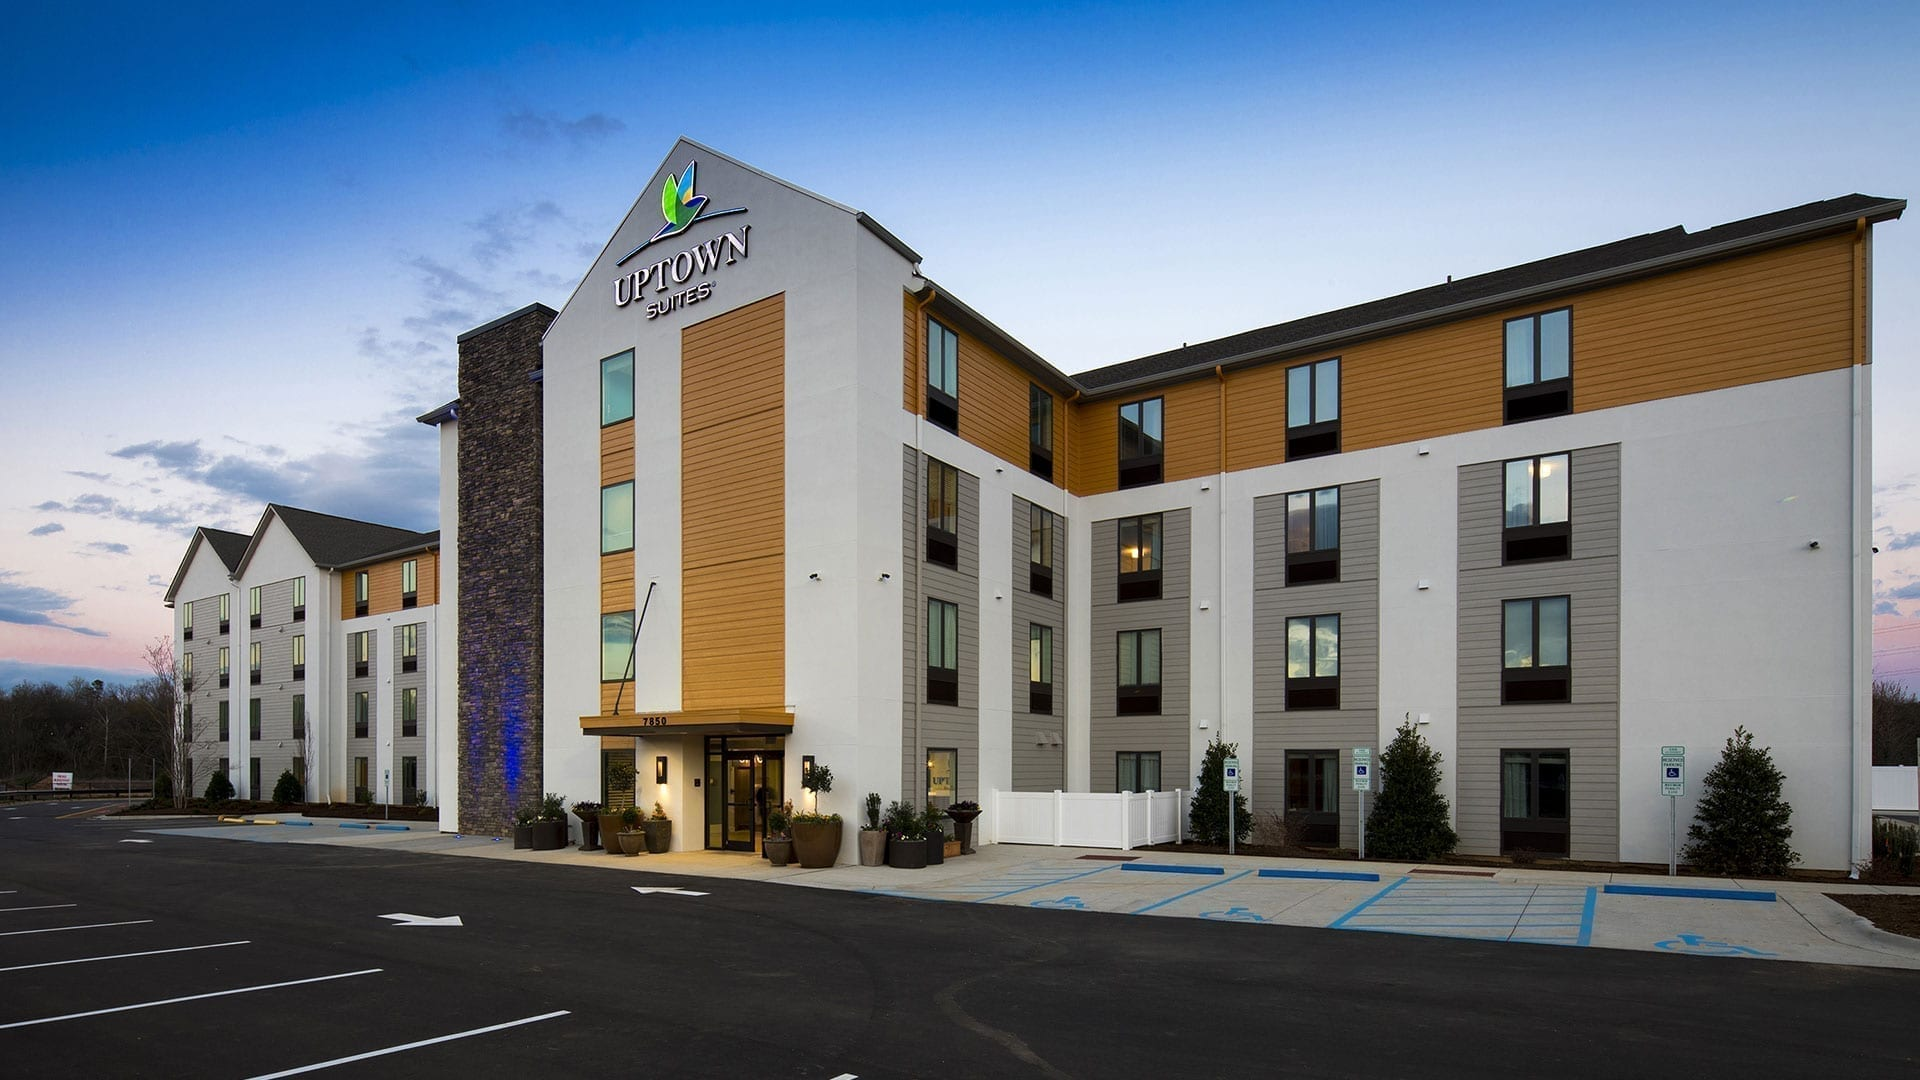 Uptown/Intown Suites Hotel Design - Swedroe Architecture